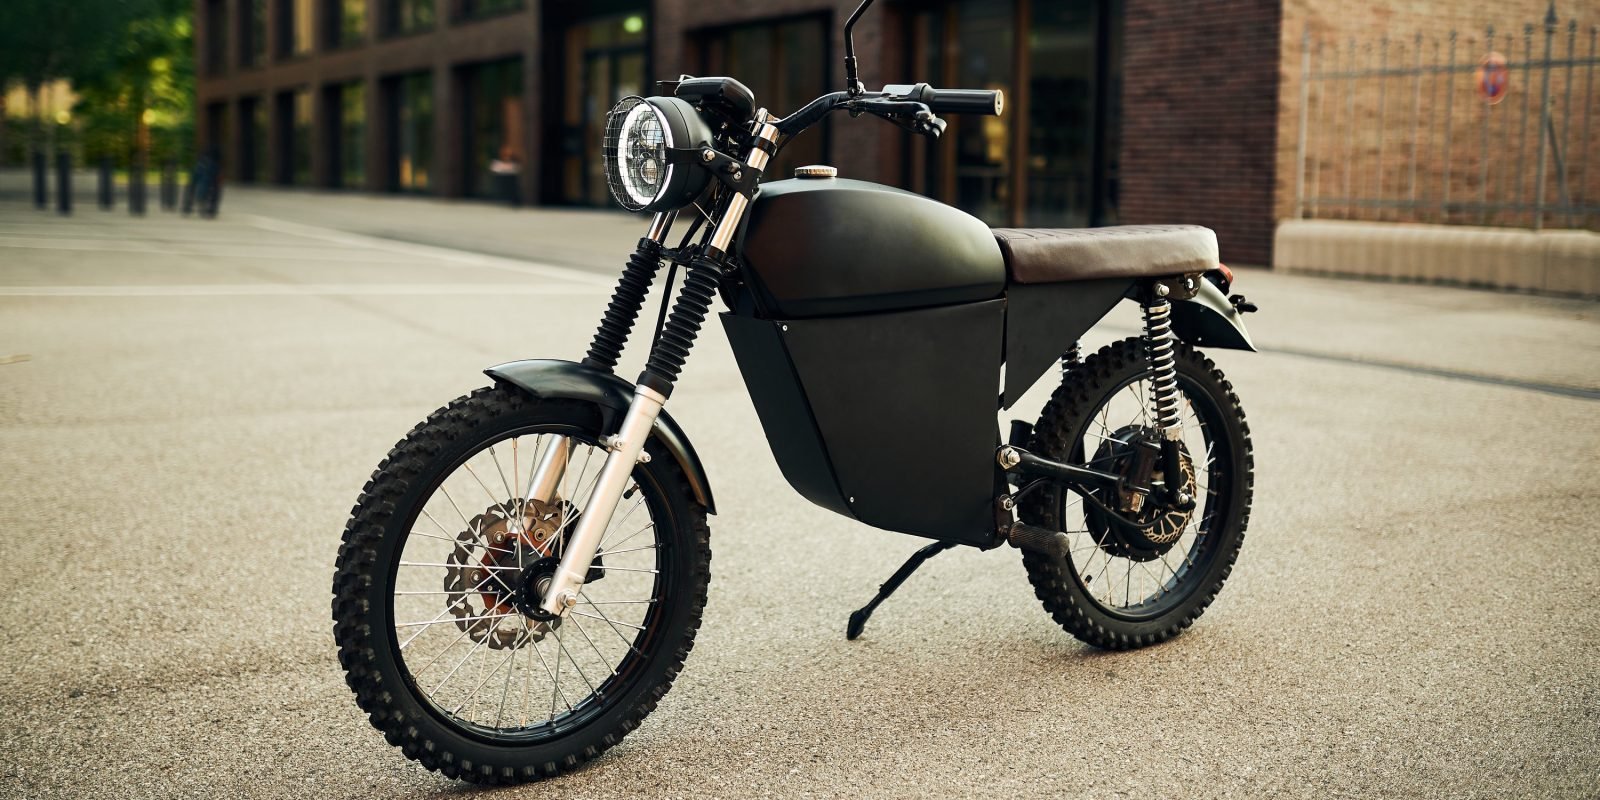 BlackTea Moped offers 50 MPH electric motorbike as cheap as a gas bike